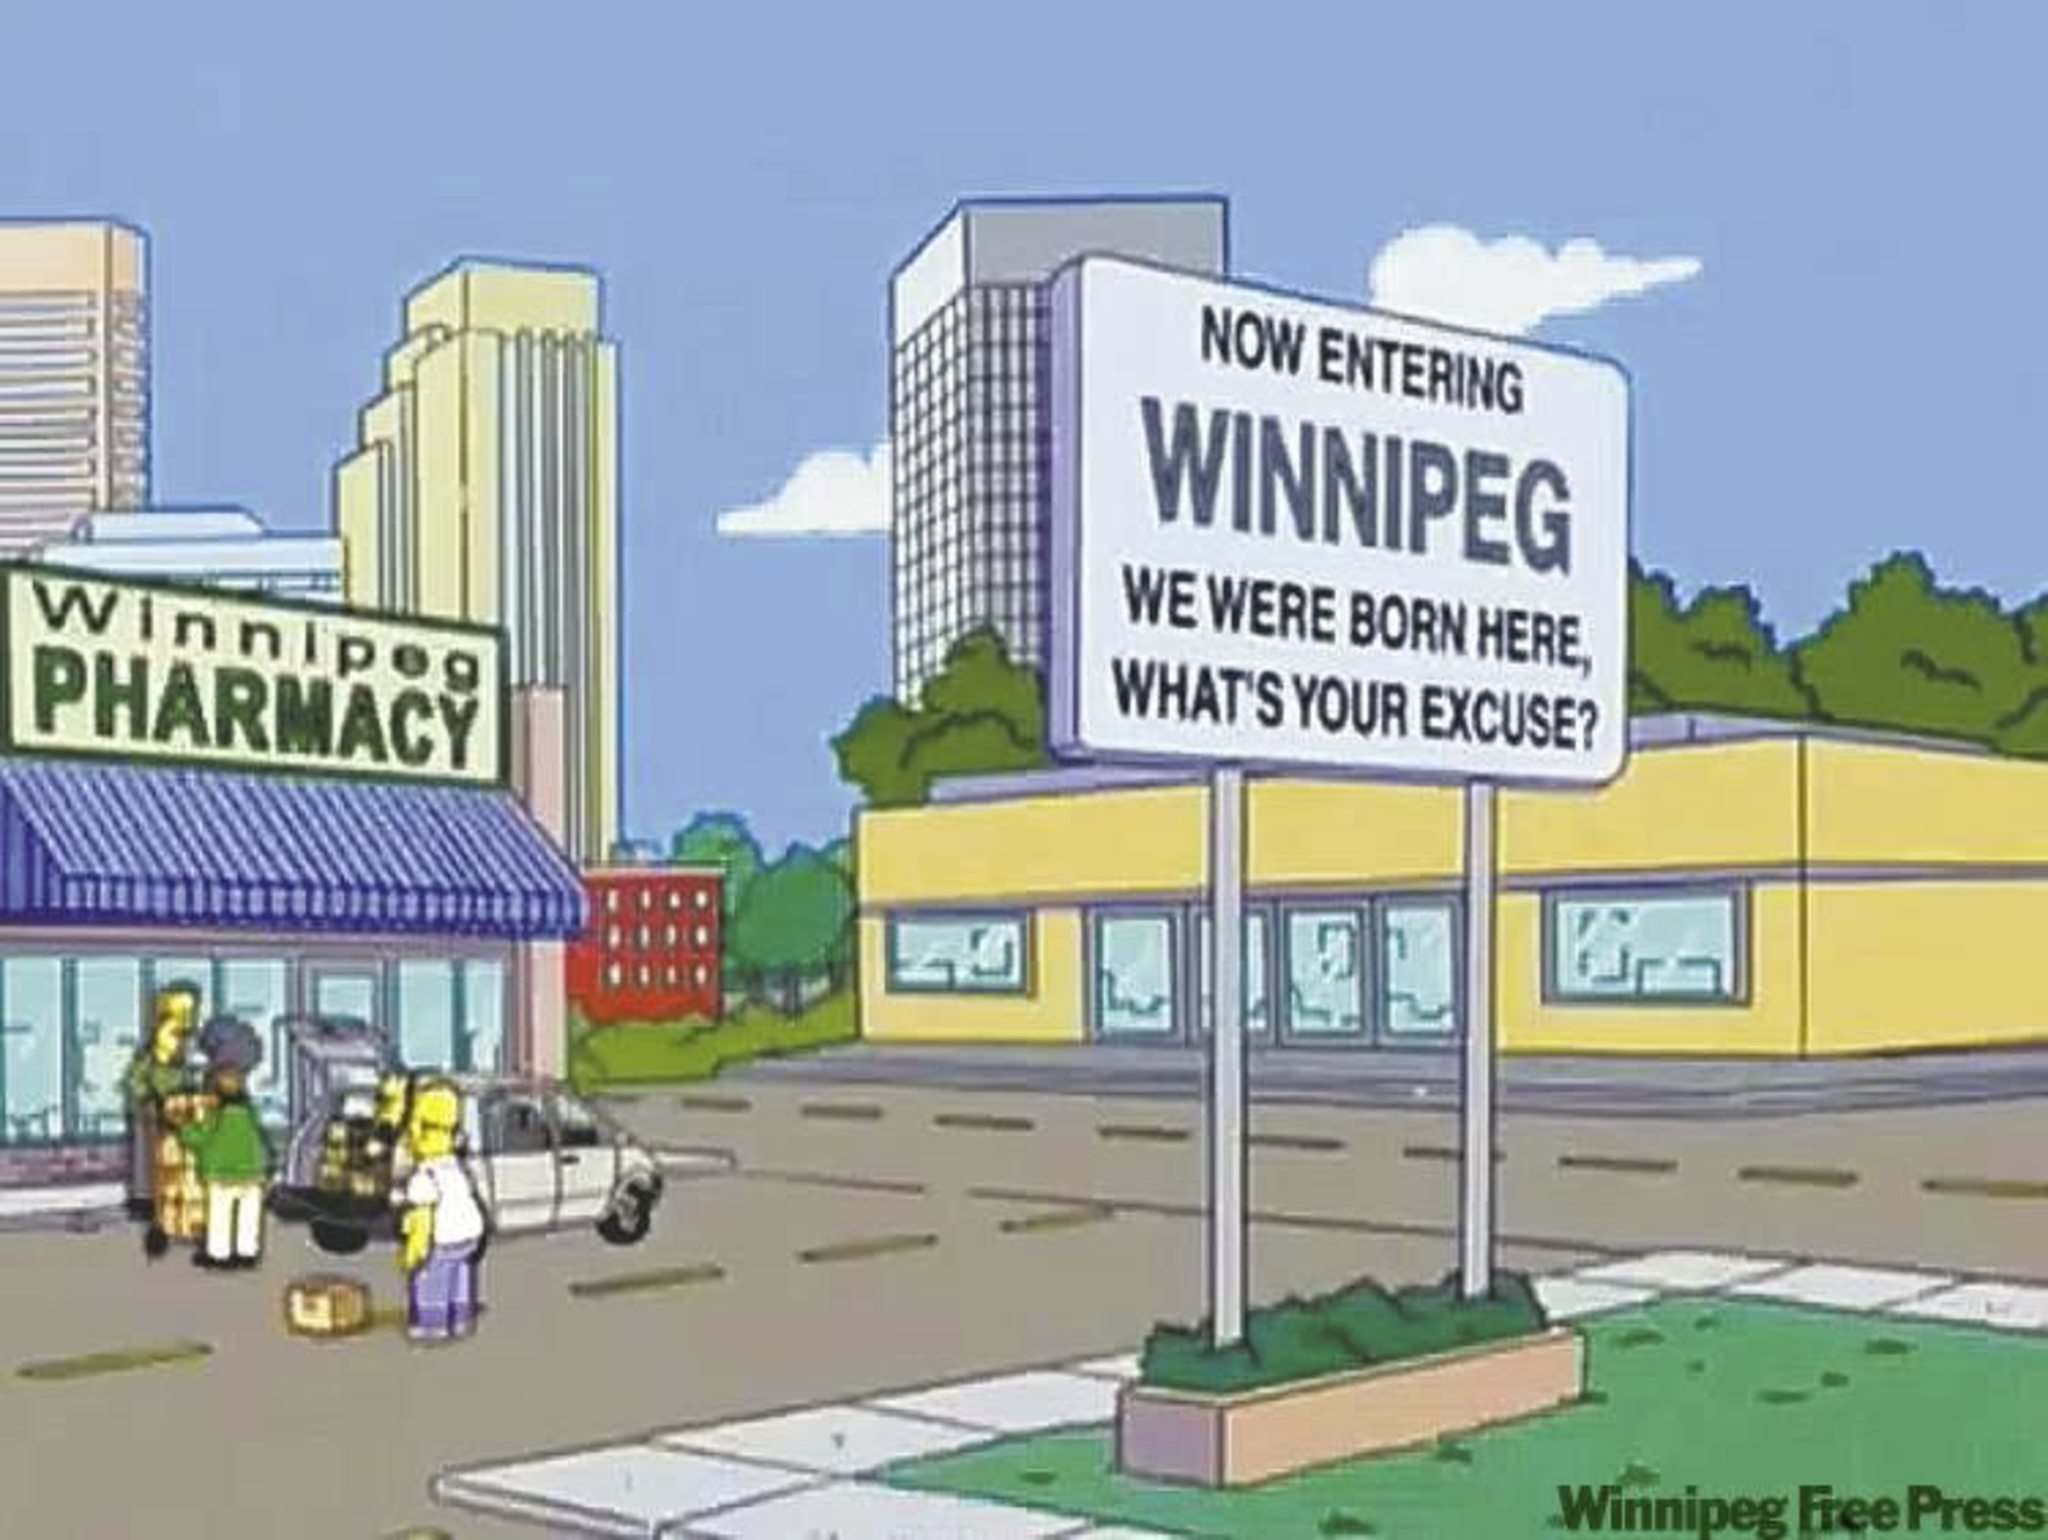 The Simpsons had some fun at Winnipeg&rsquo;s expense, but who cares? We were on The Simpsons!</p></p>